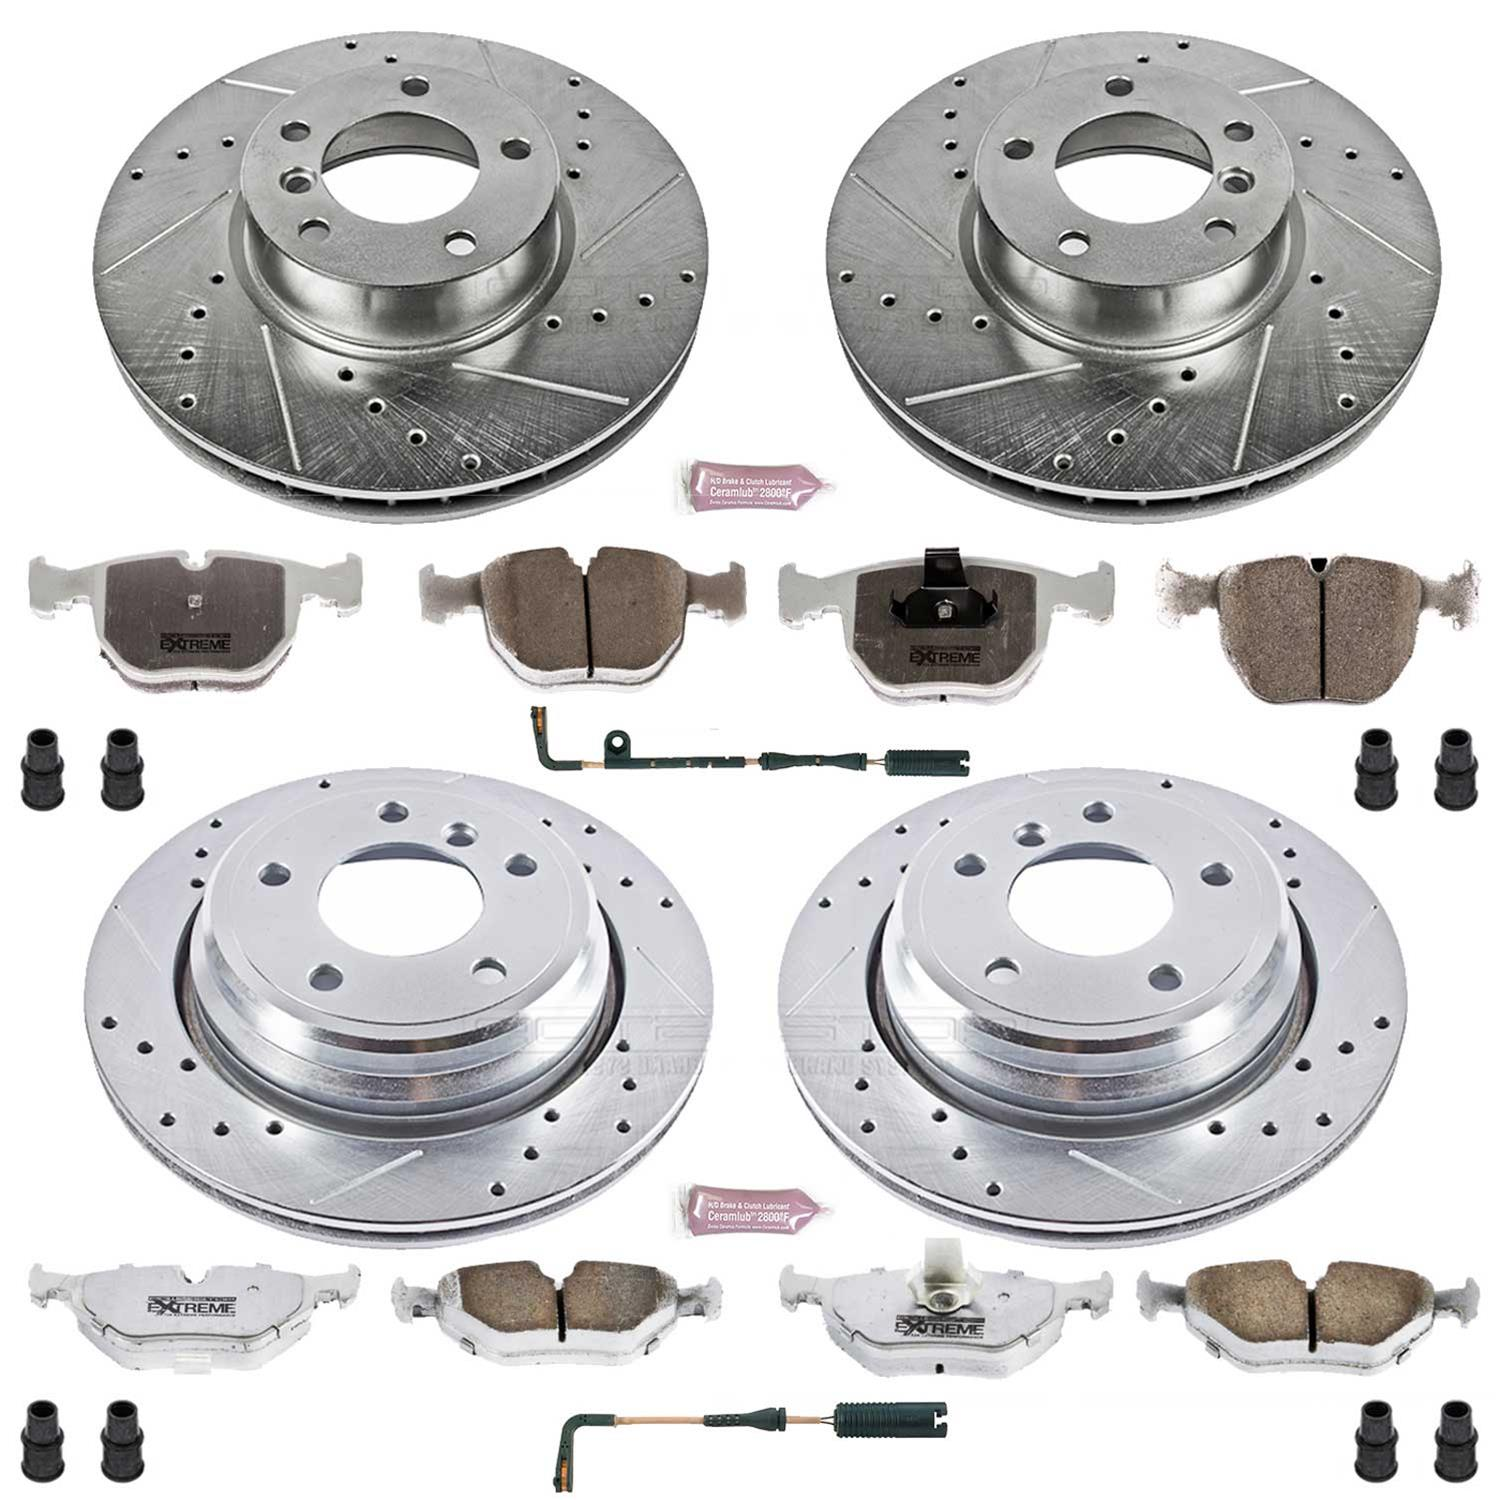 Power Stop K946 Front and Rear Z23 Carbon Fiber Brake Pads with Drilled /& Slotted Brake Rotors Kit